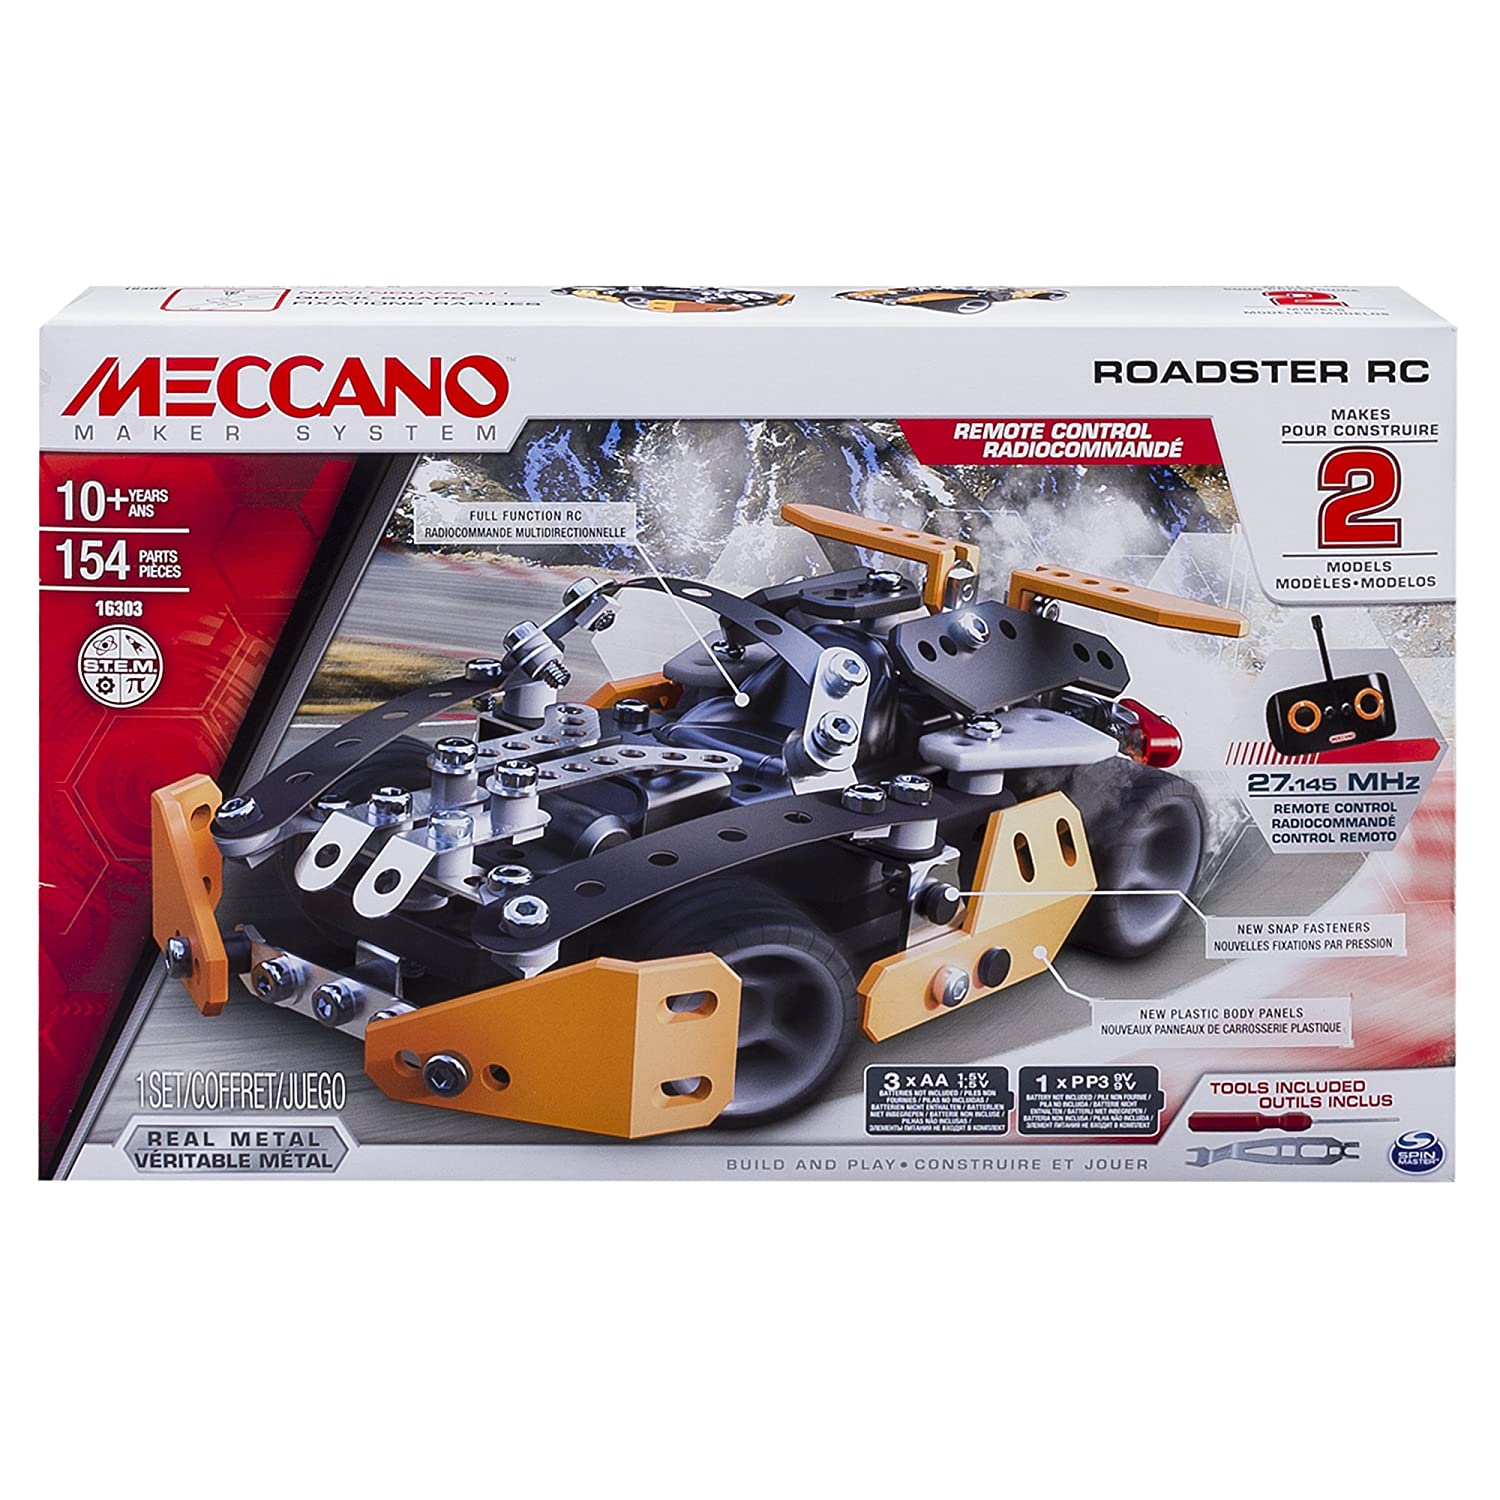 Meccano - Roadster RC - Remote Control Vehicle Spin Master 6028127